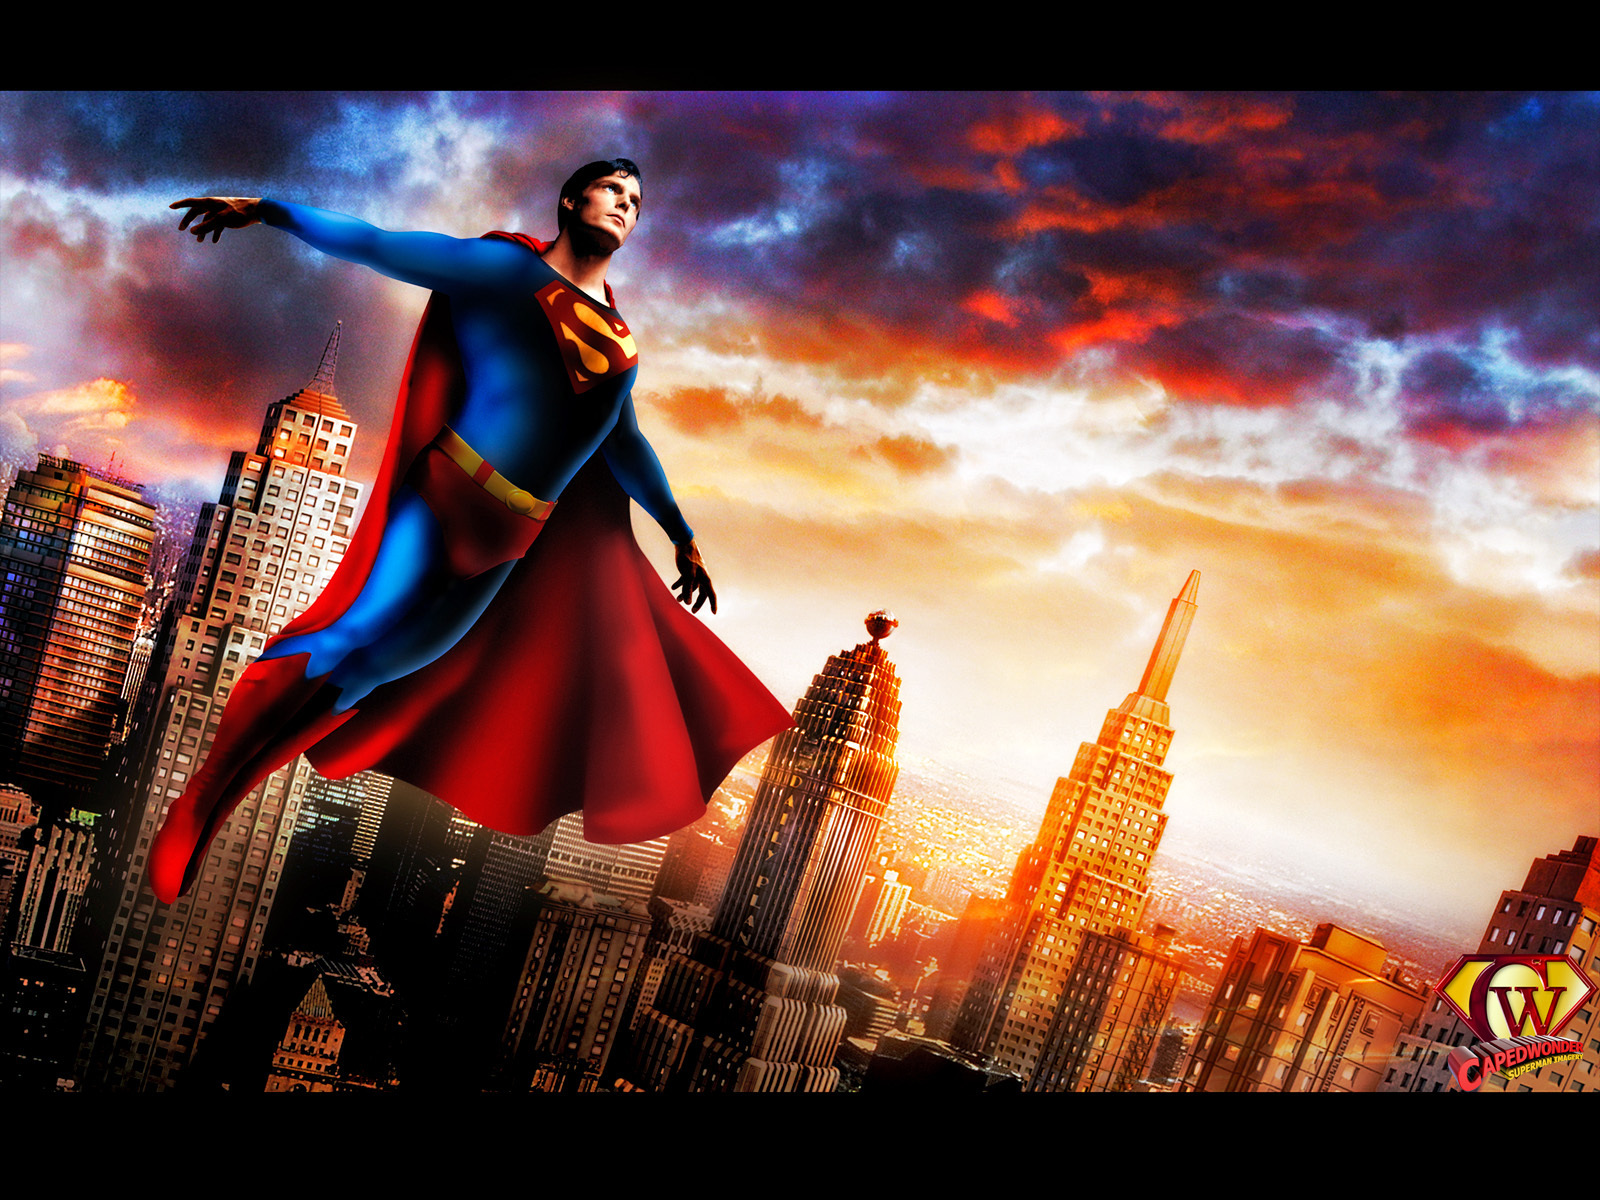 Superman The Movie images Superman wallpaper photos 20439345 1600x1200